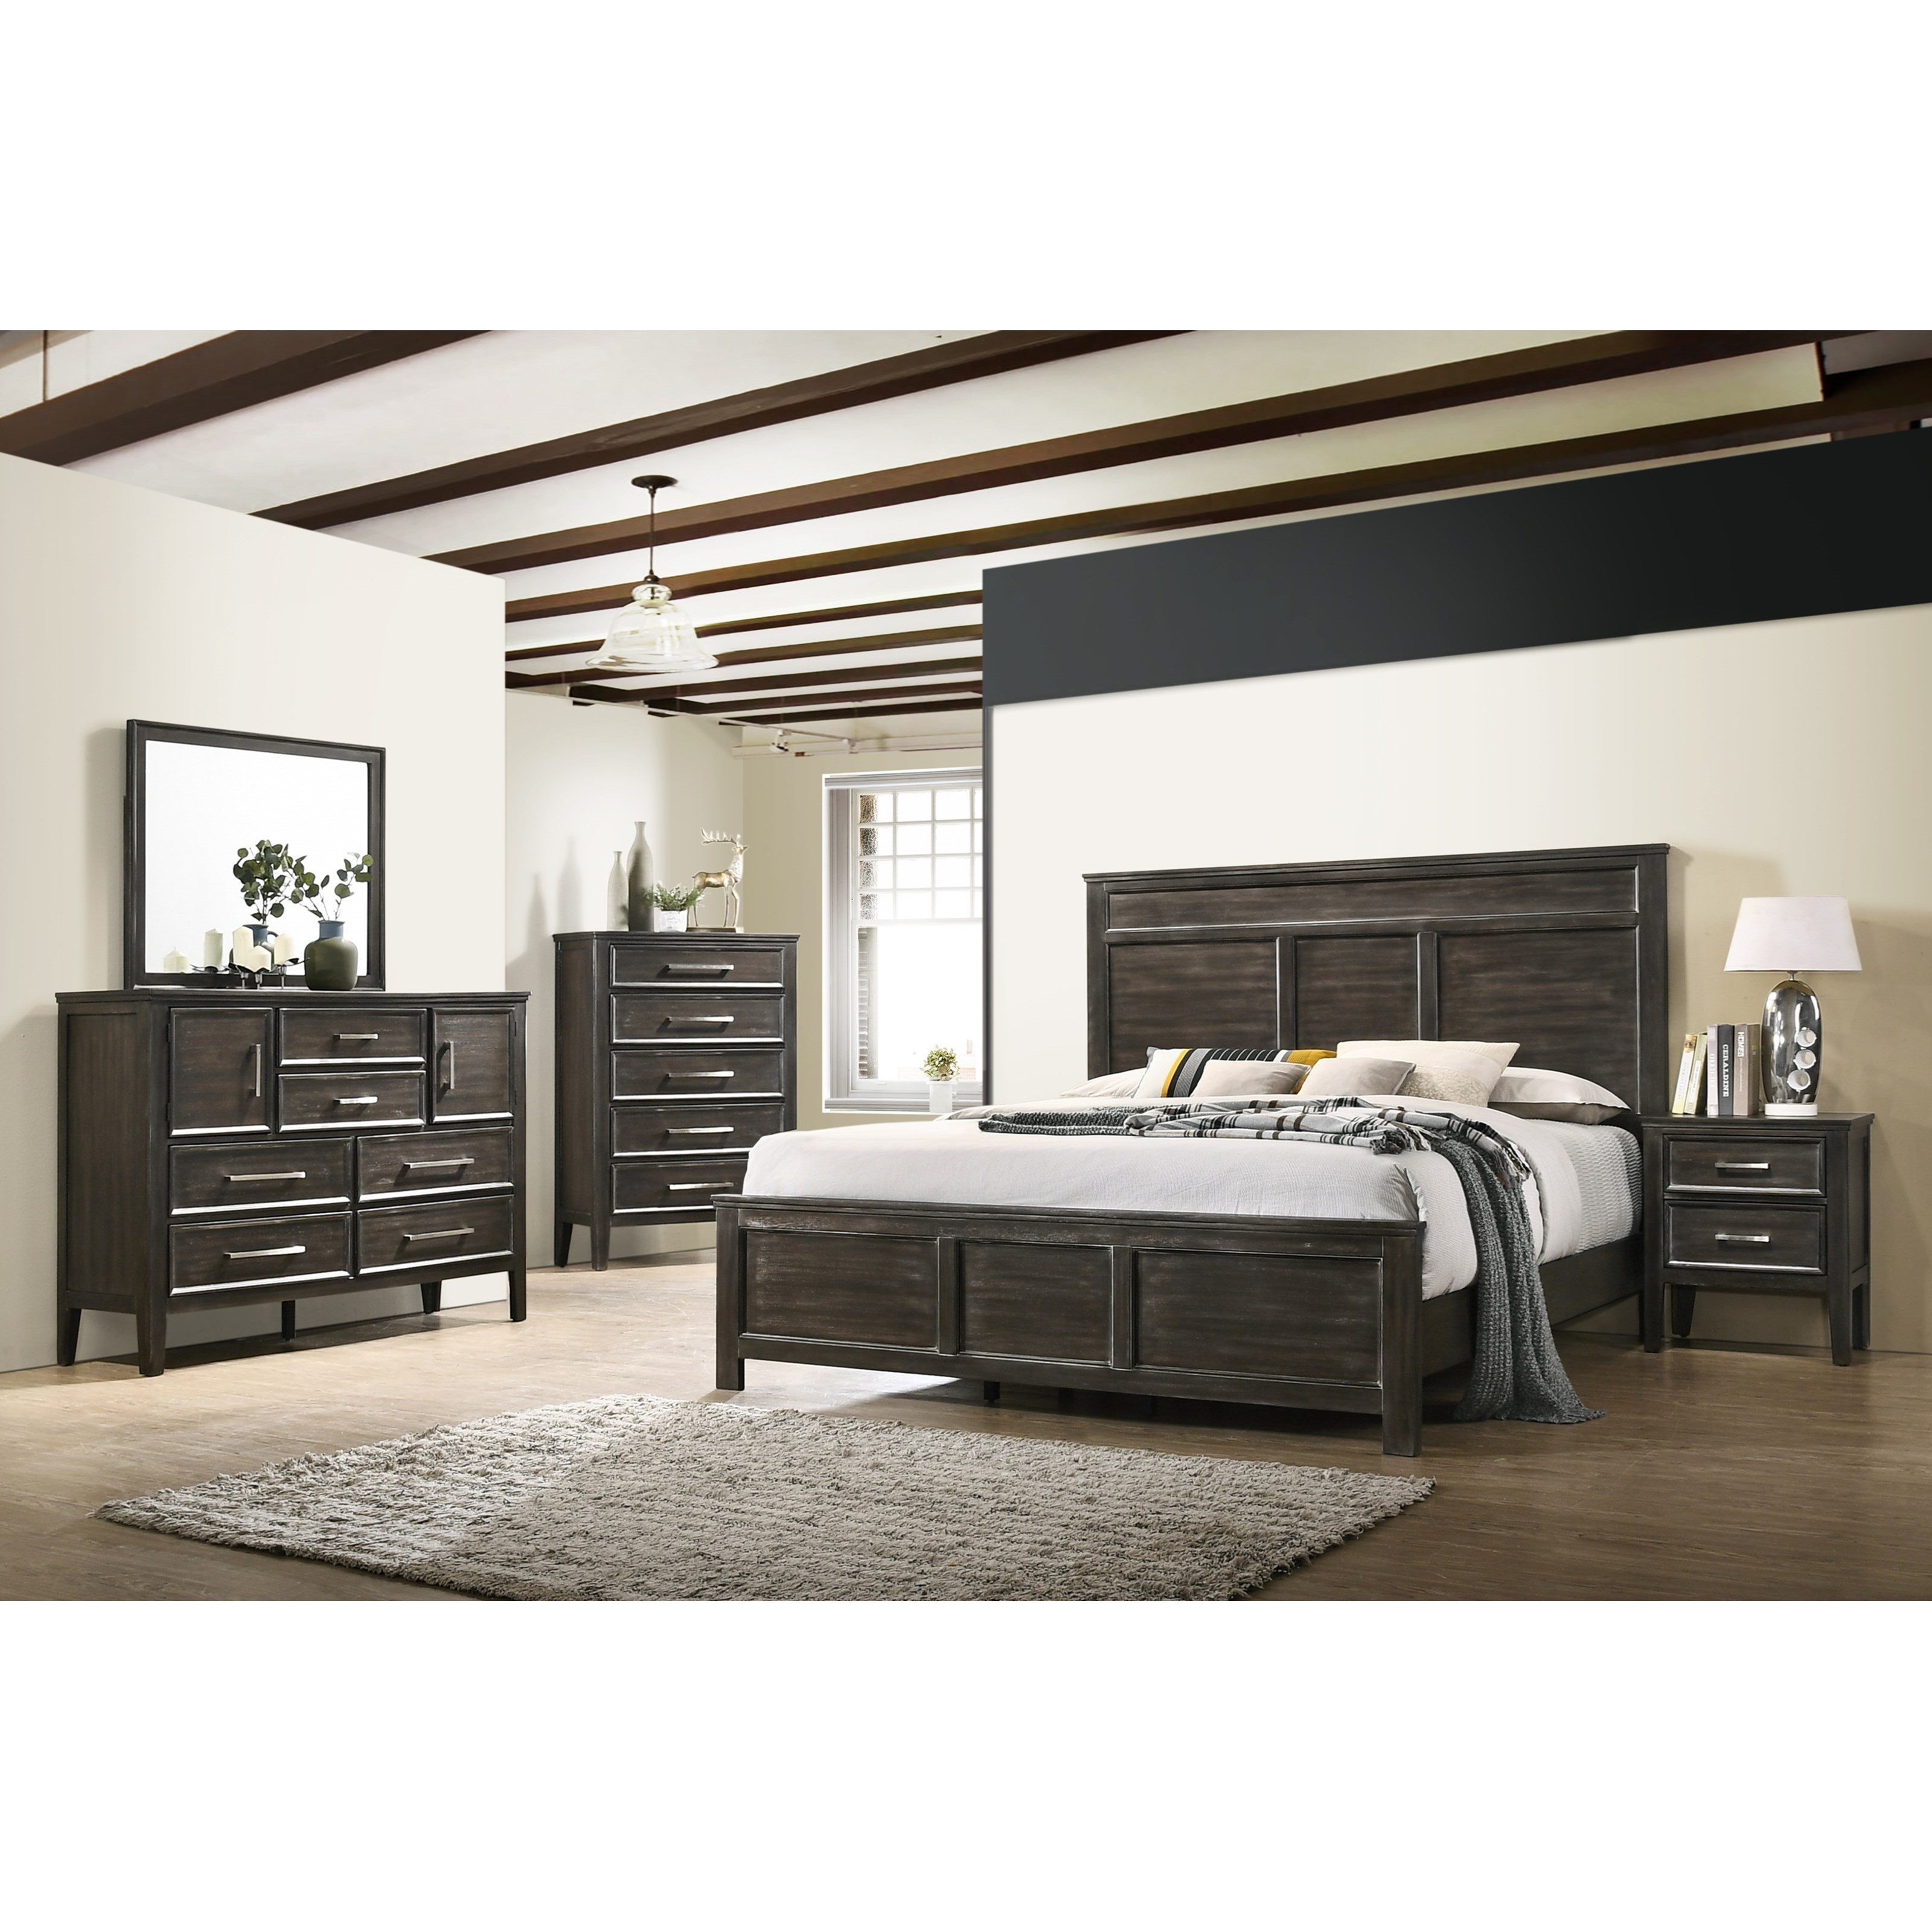 Andover Twin Bedroom Group by New Classic at Rife's Home Furniture